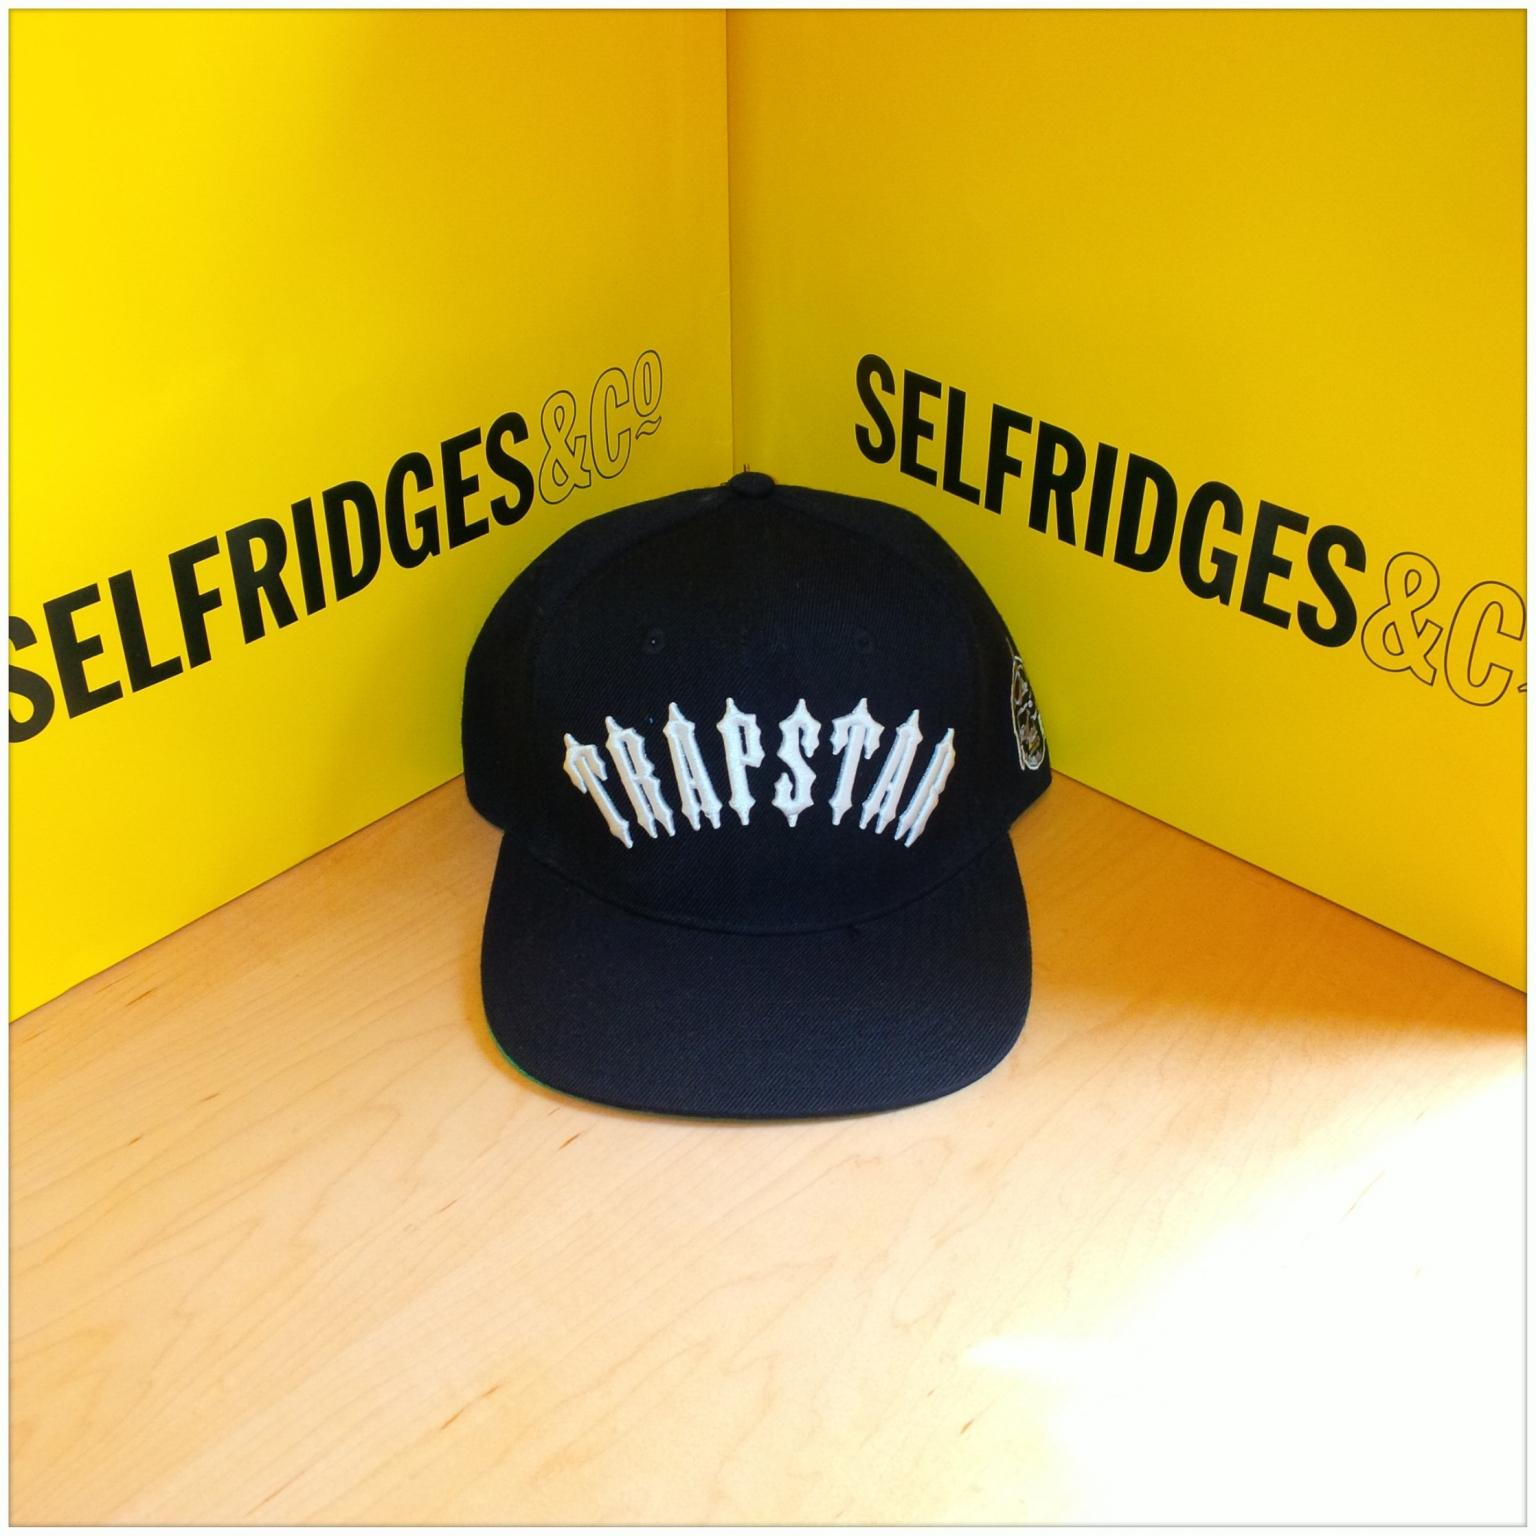 7e9c2336610 Classic Irongate Trapstar Snapback Cap Hat in E9 London for £50.00 ...